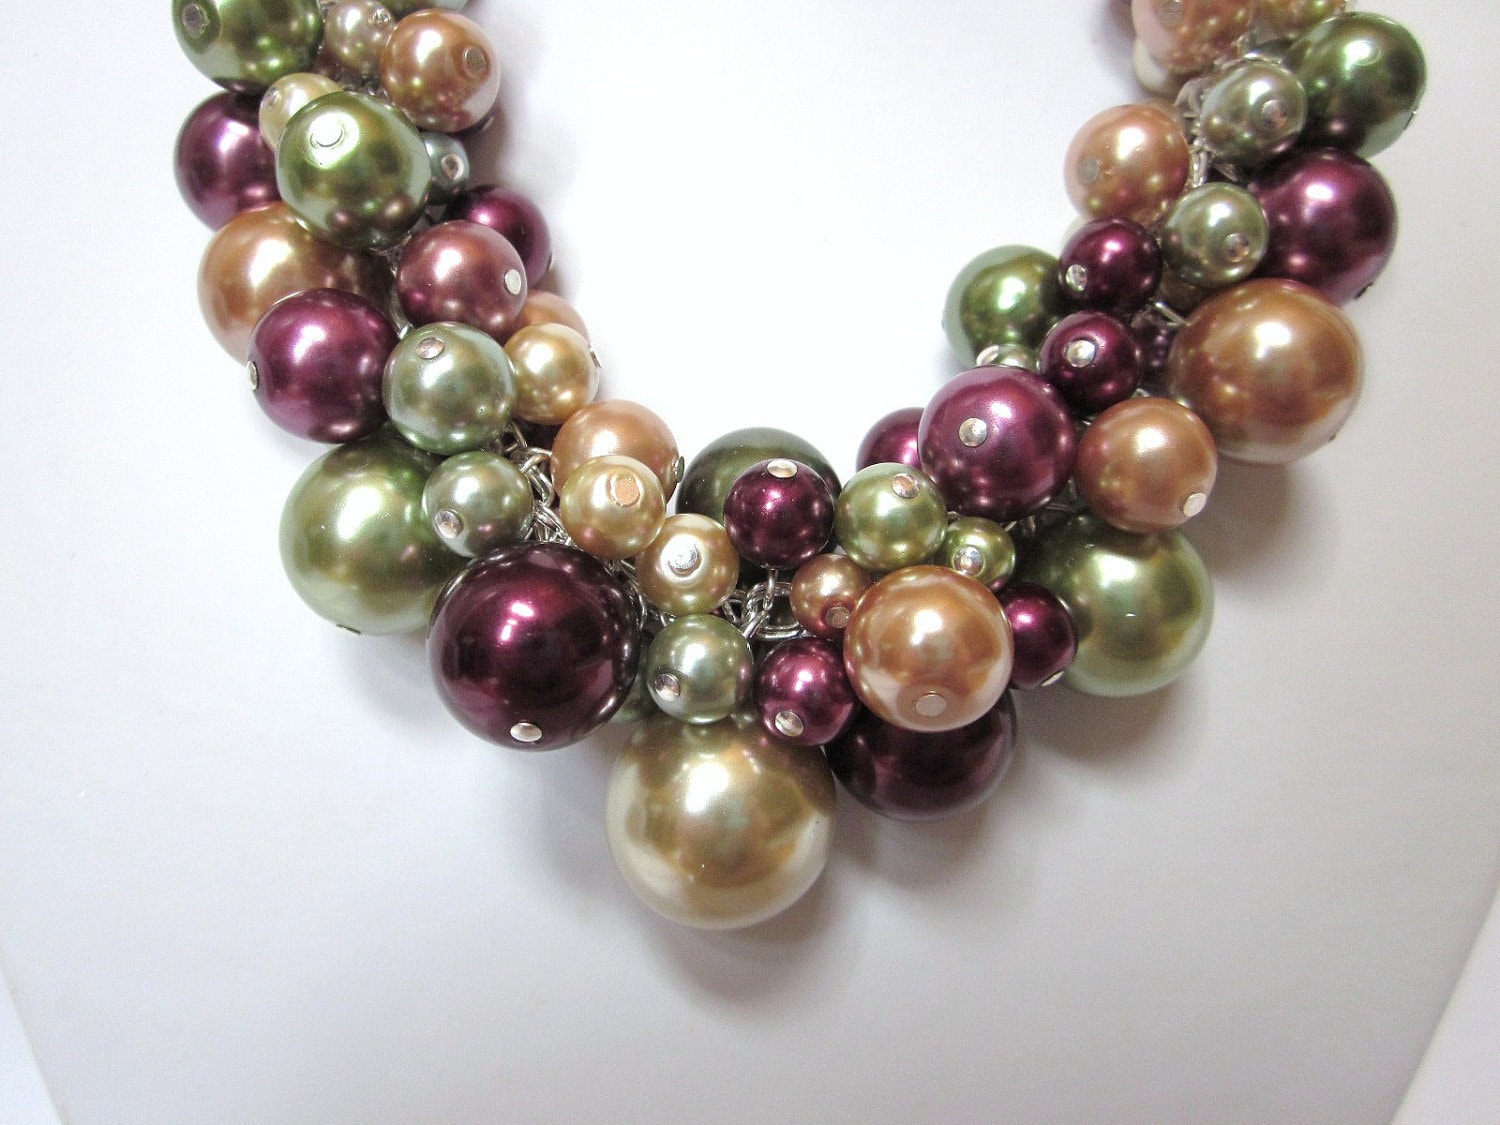 """Pearl Cluster Necklace -""""Fall Apples"""" in Green, Burgundy and Gold - Chunky, Choker, Bib, Necklace, Wedding, Bridal, Bridesmaid, Prom - CreationsbyCynthia1"""